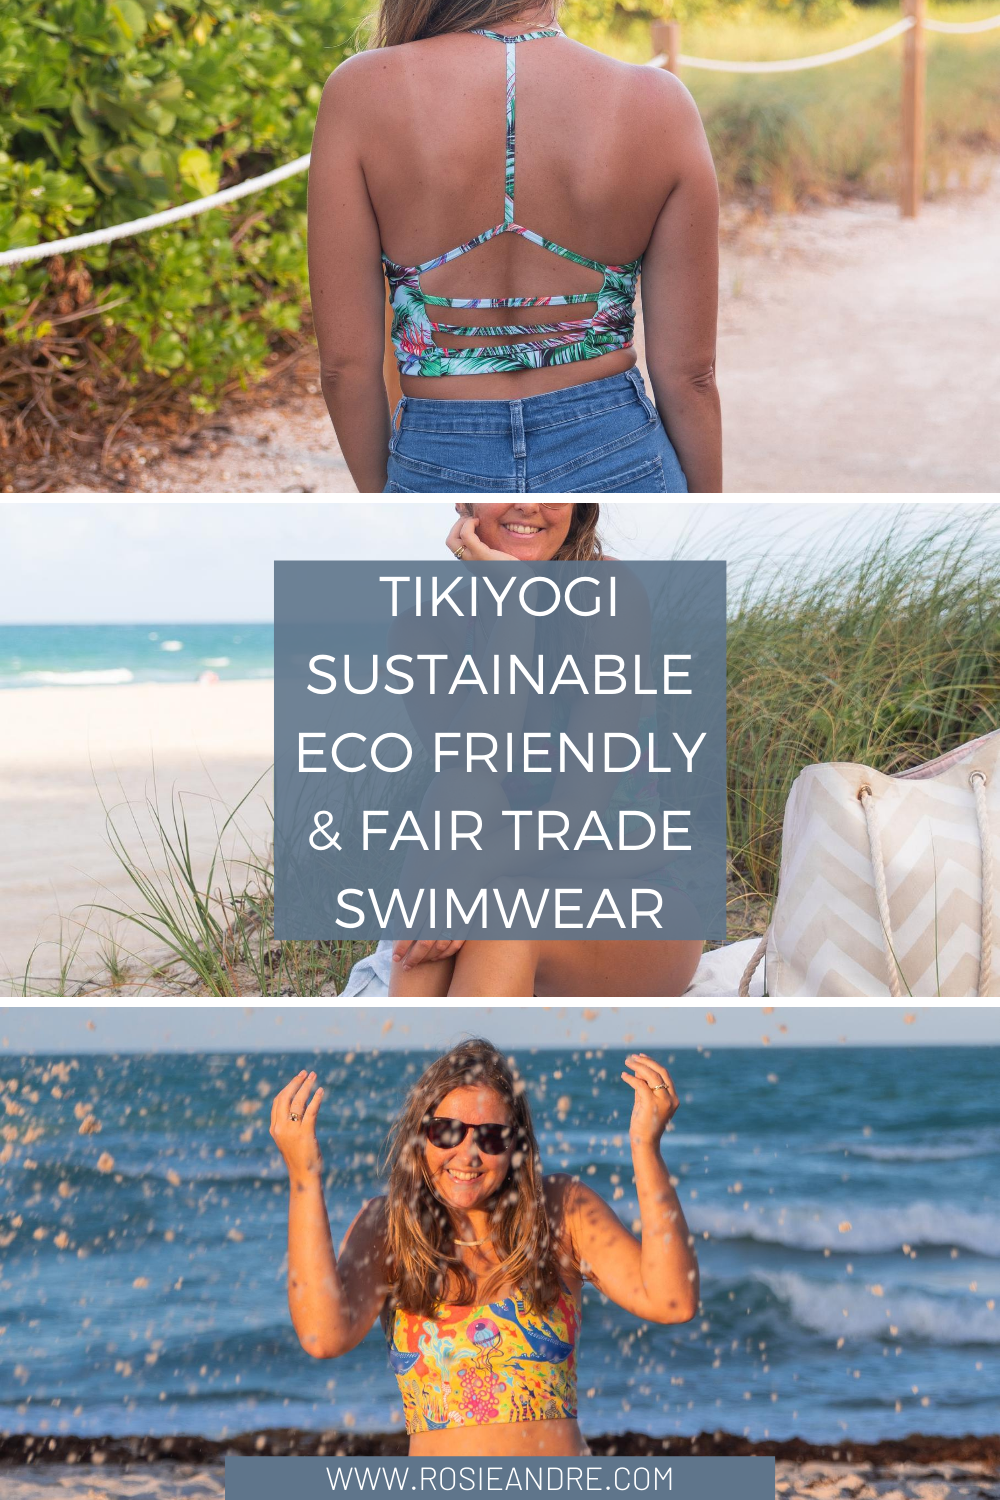 Rosie Andre - TikiYogi (eco friendly fashion, sustainable fashion, fair trade fashion, eco friendly swimwear, sustainable swimwear, fair trade swimwear, Bali brand, swimwear, eco conscious, eco friendly living, eco friendly products)